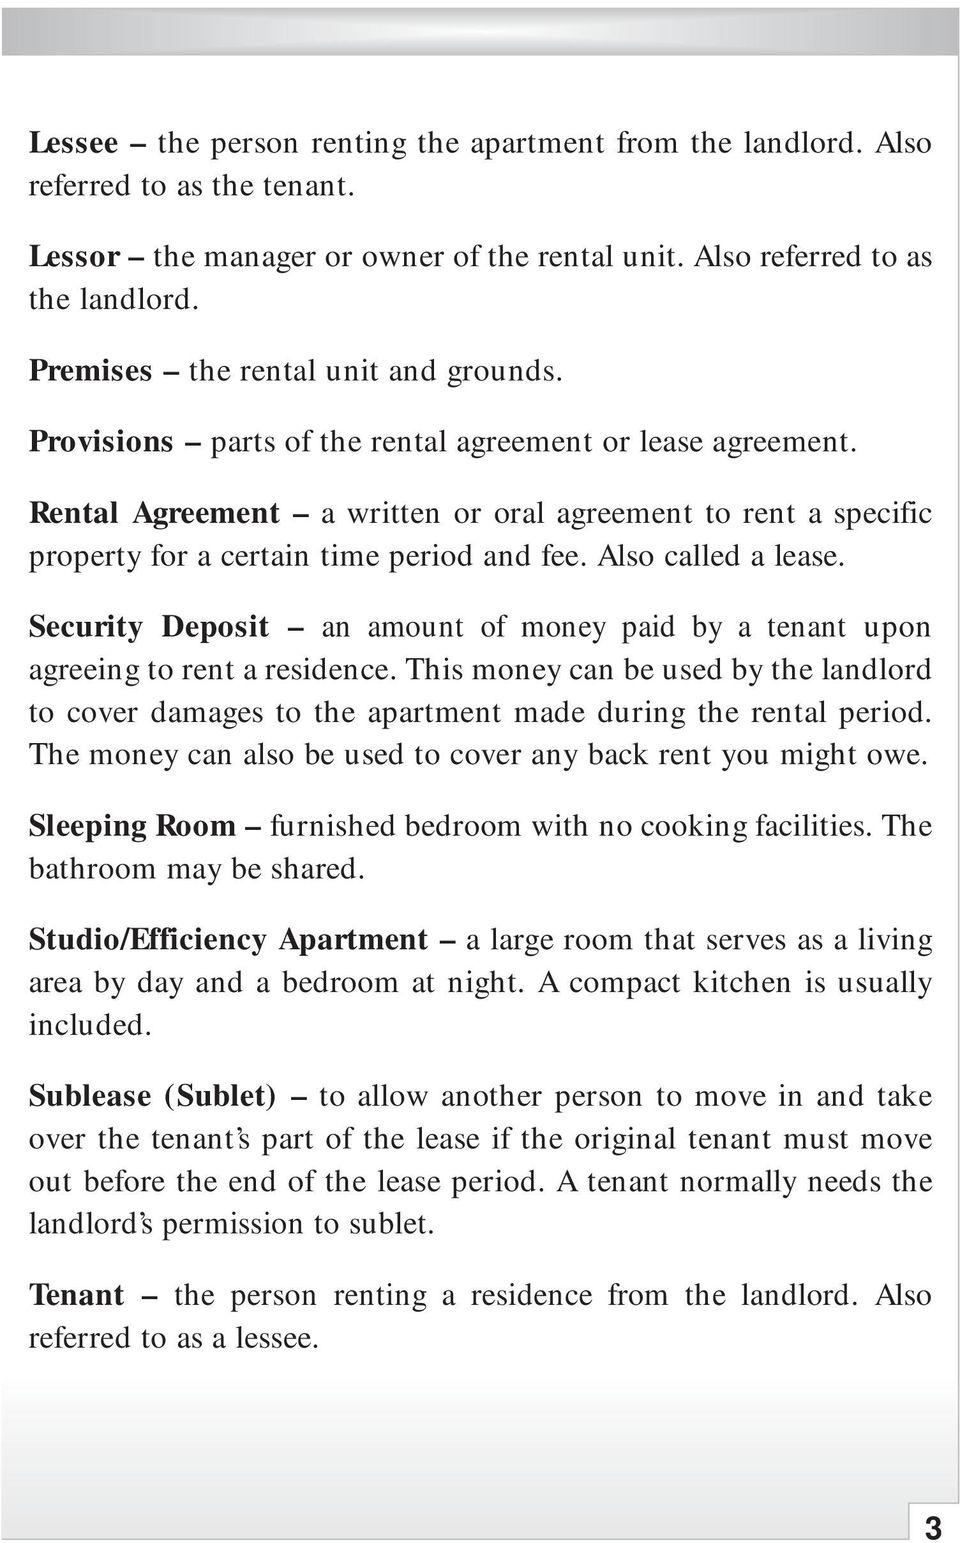 Rental Agreement a written or oral agreement to rent a specific property for a certain time period and fee. Also called a lease.